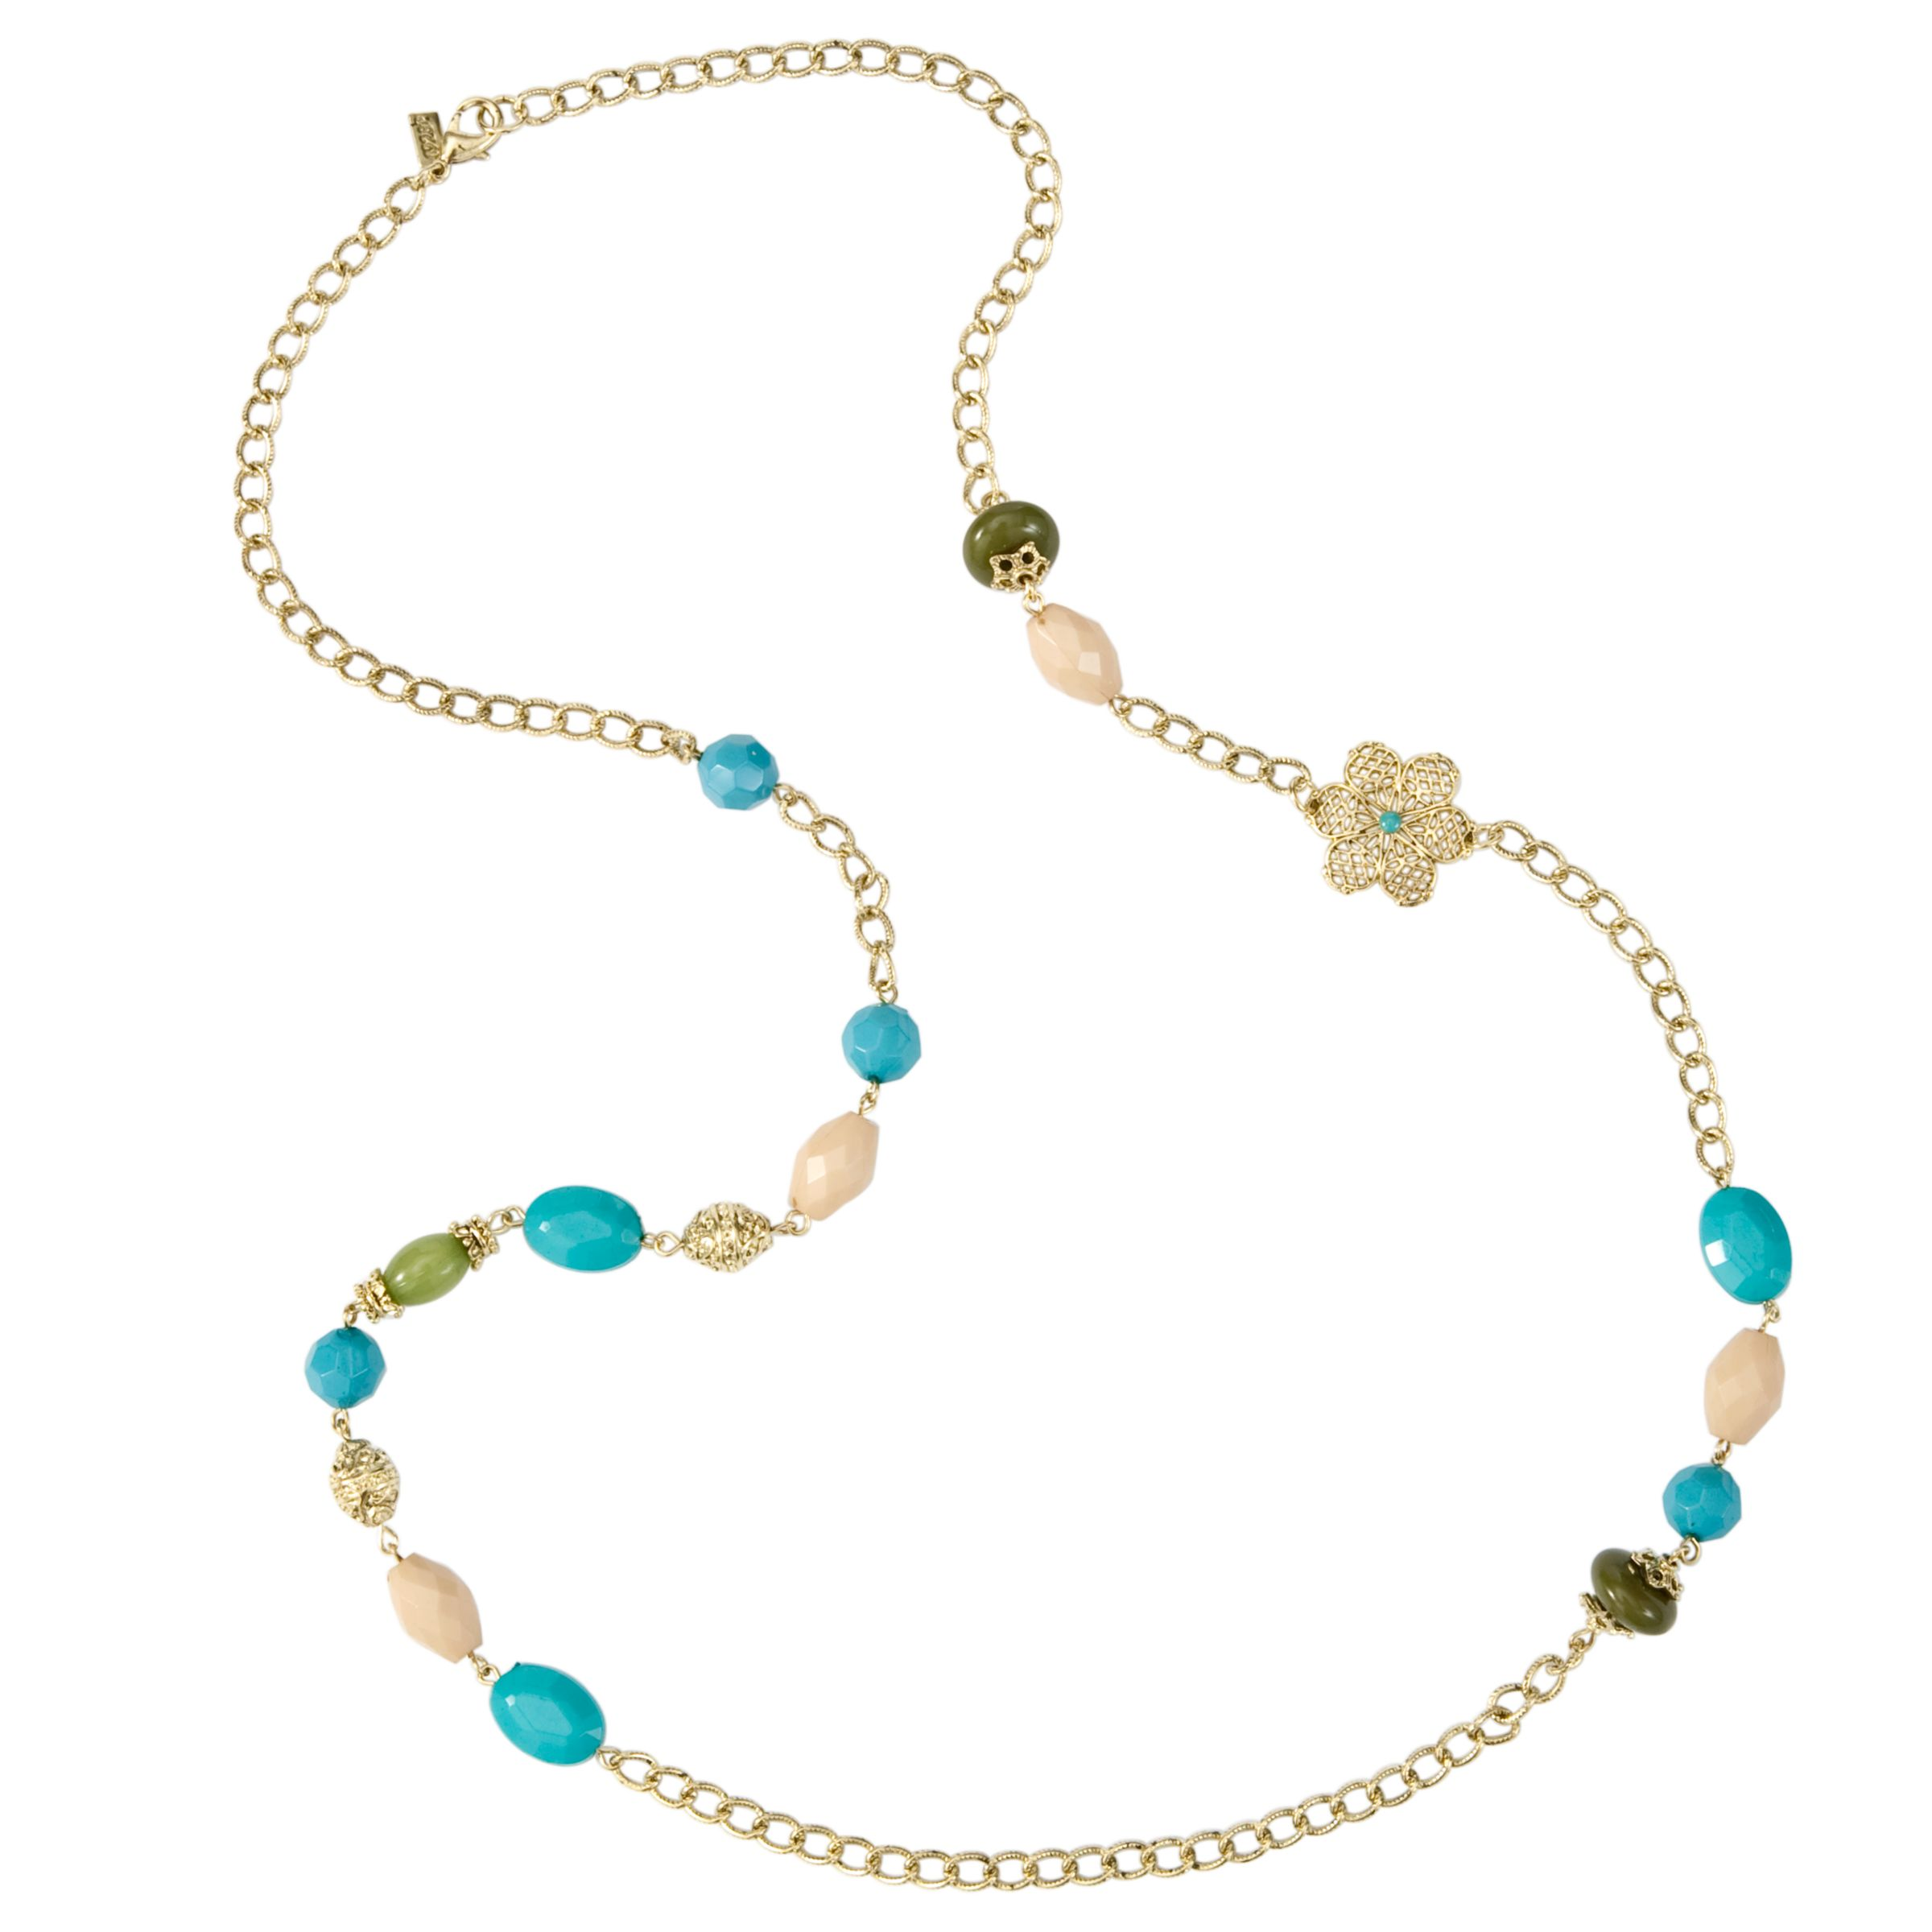 1928 New York Turquoise Fantasy Cream Green and Turquoise Bead Necklace